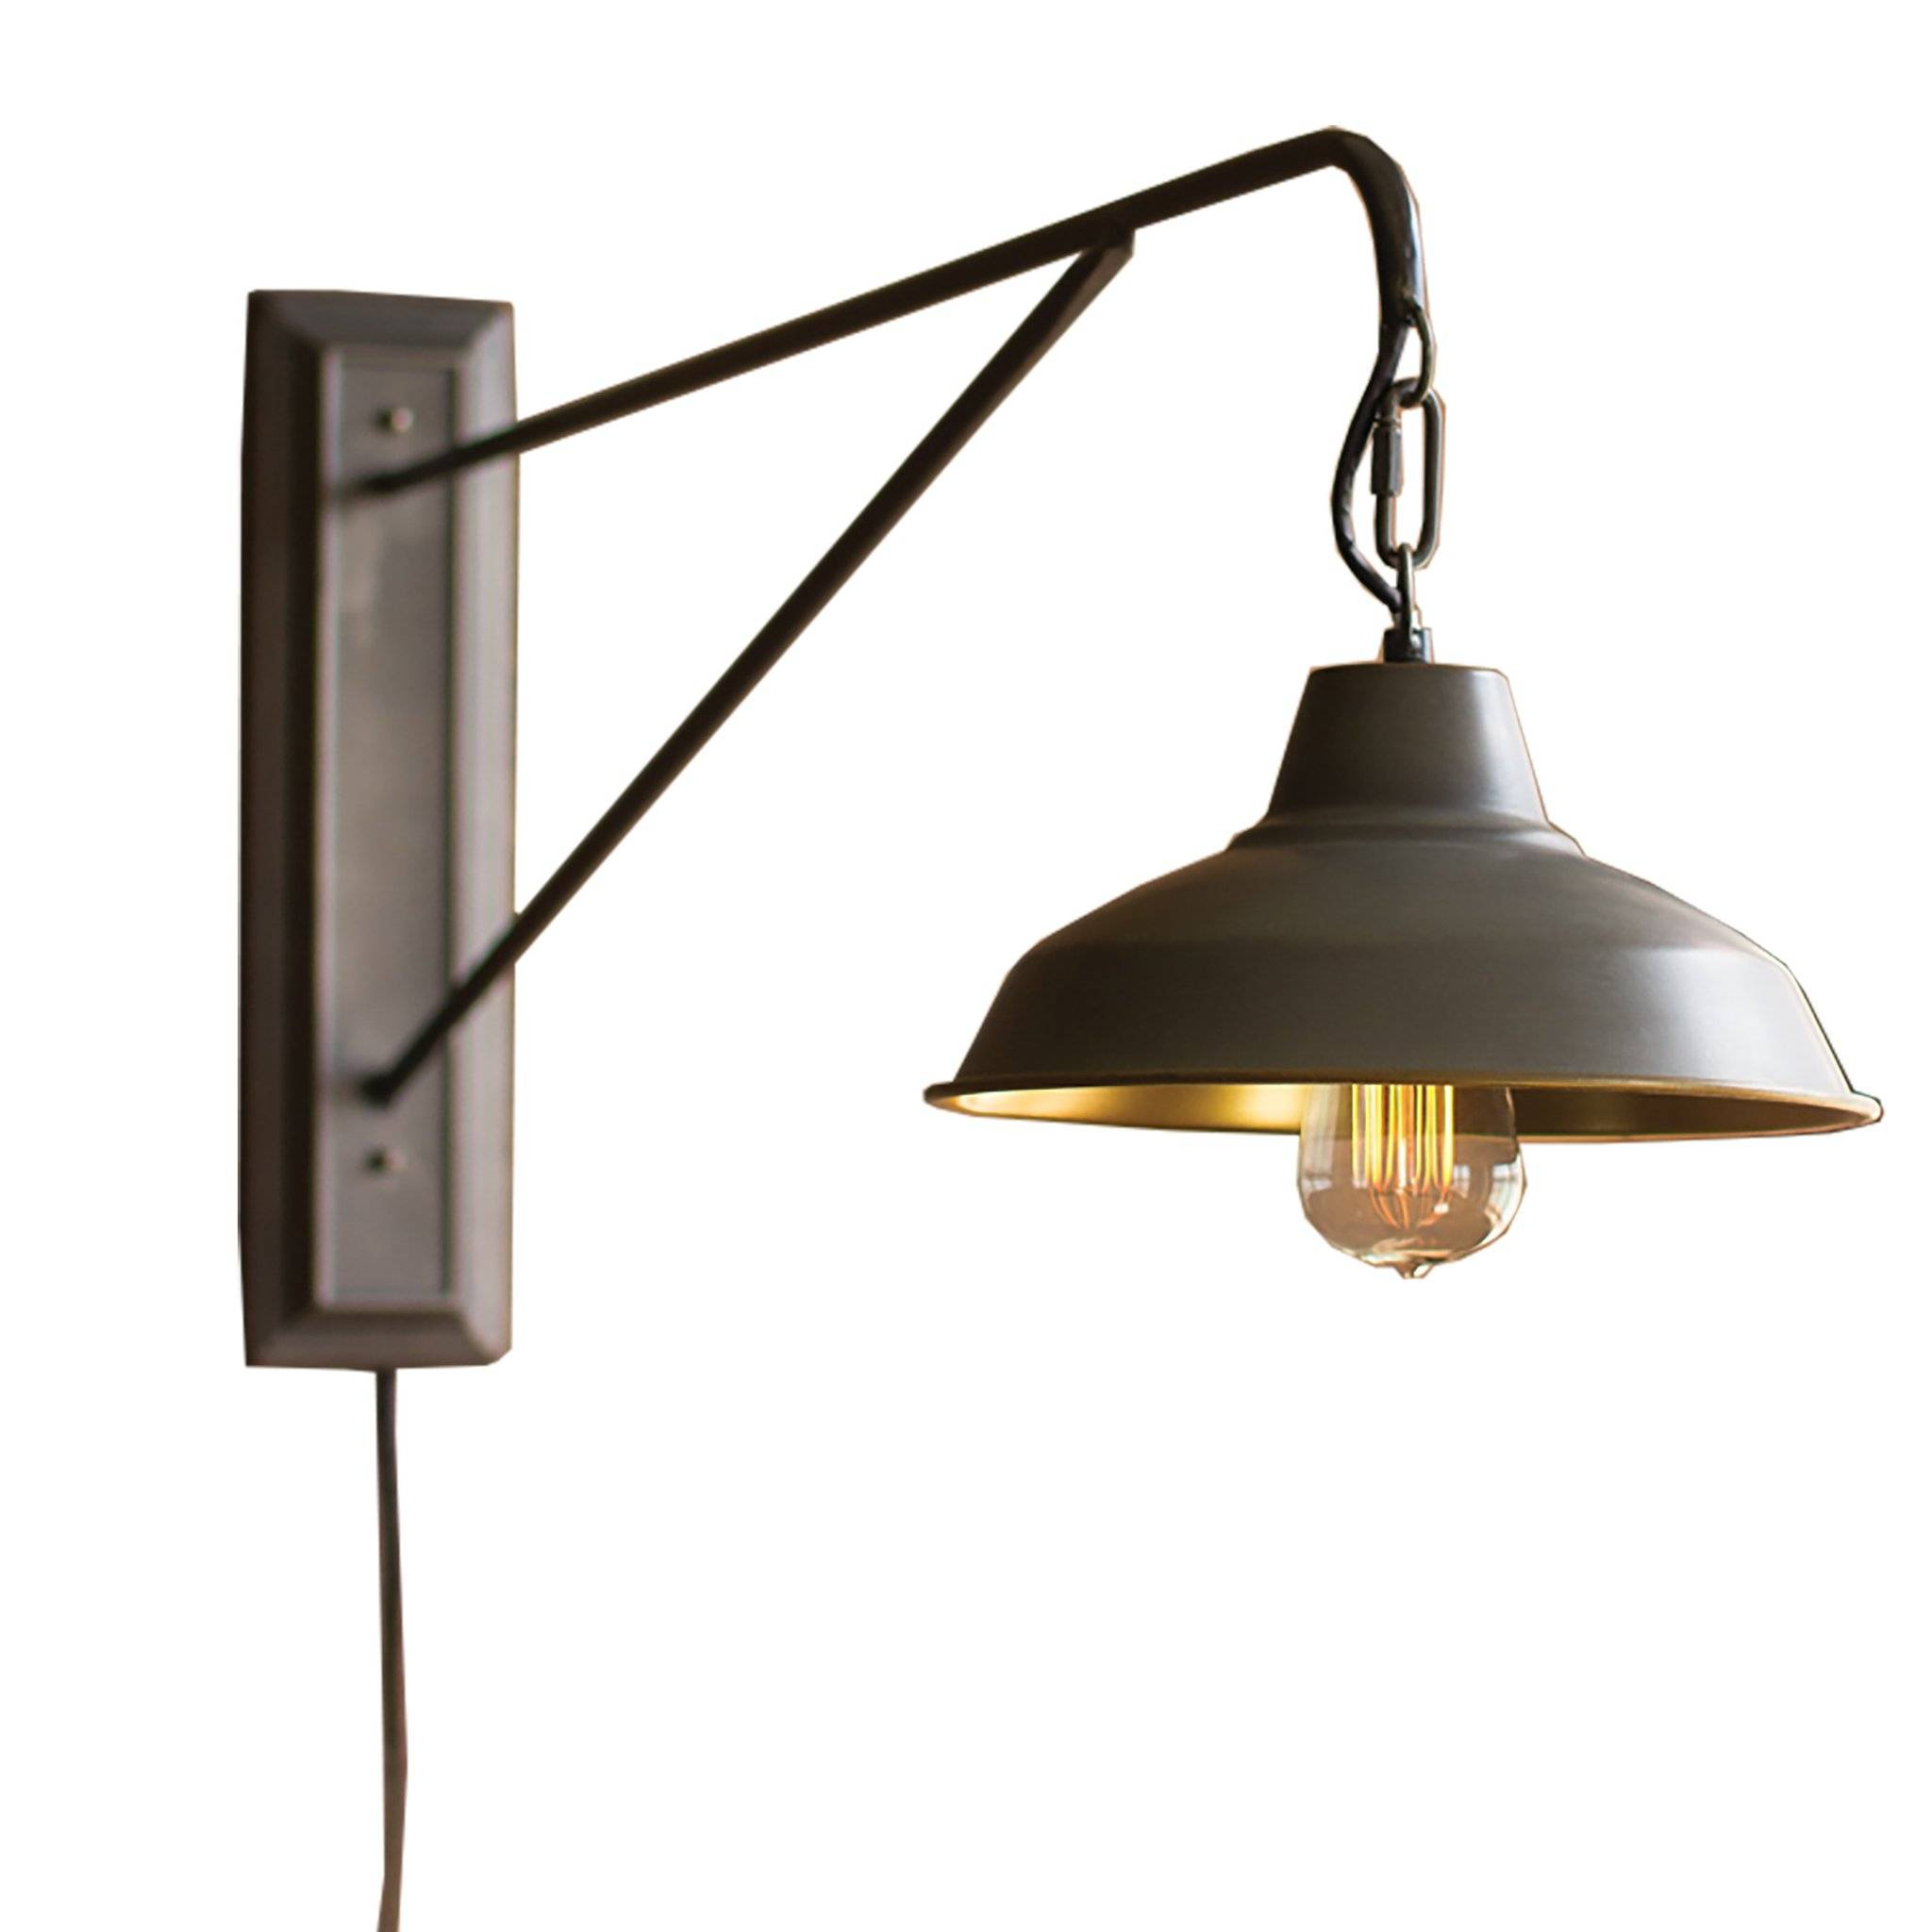 Farmhouse Industrial Modern Plug In Wall Sconce 2048x